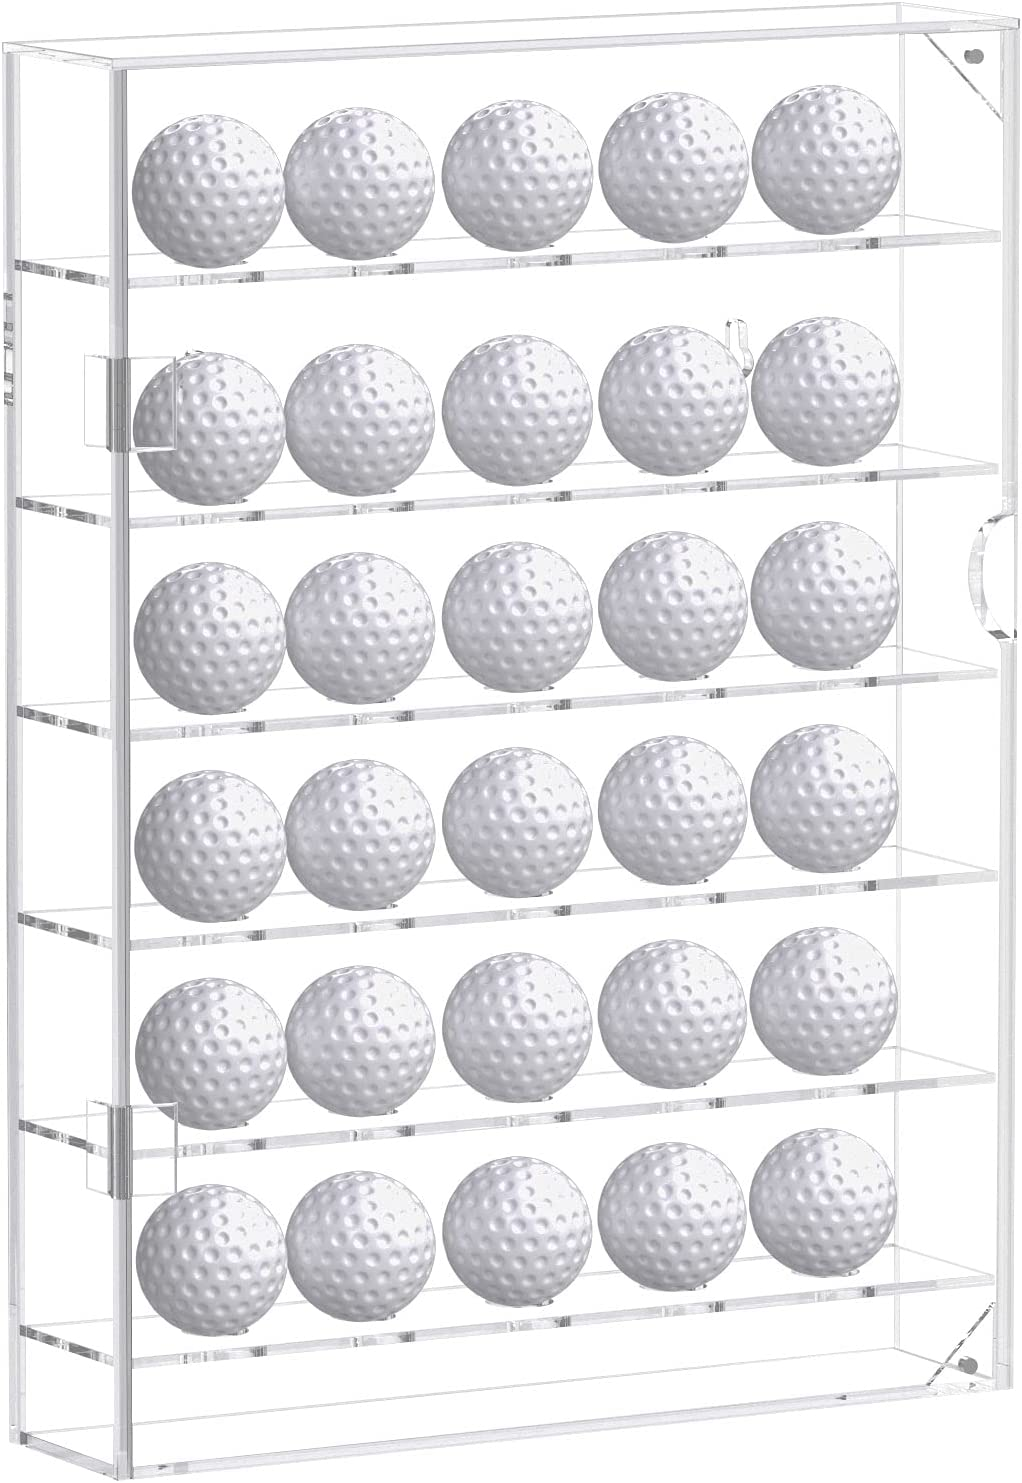 Latest item Popular brand in the world FEMELI Acrylic 30 Golf Ball Clear Hold Cabinet Case Display